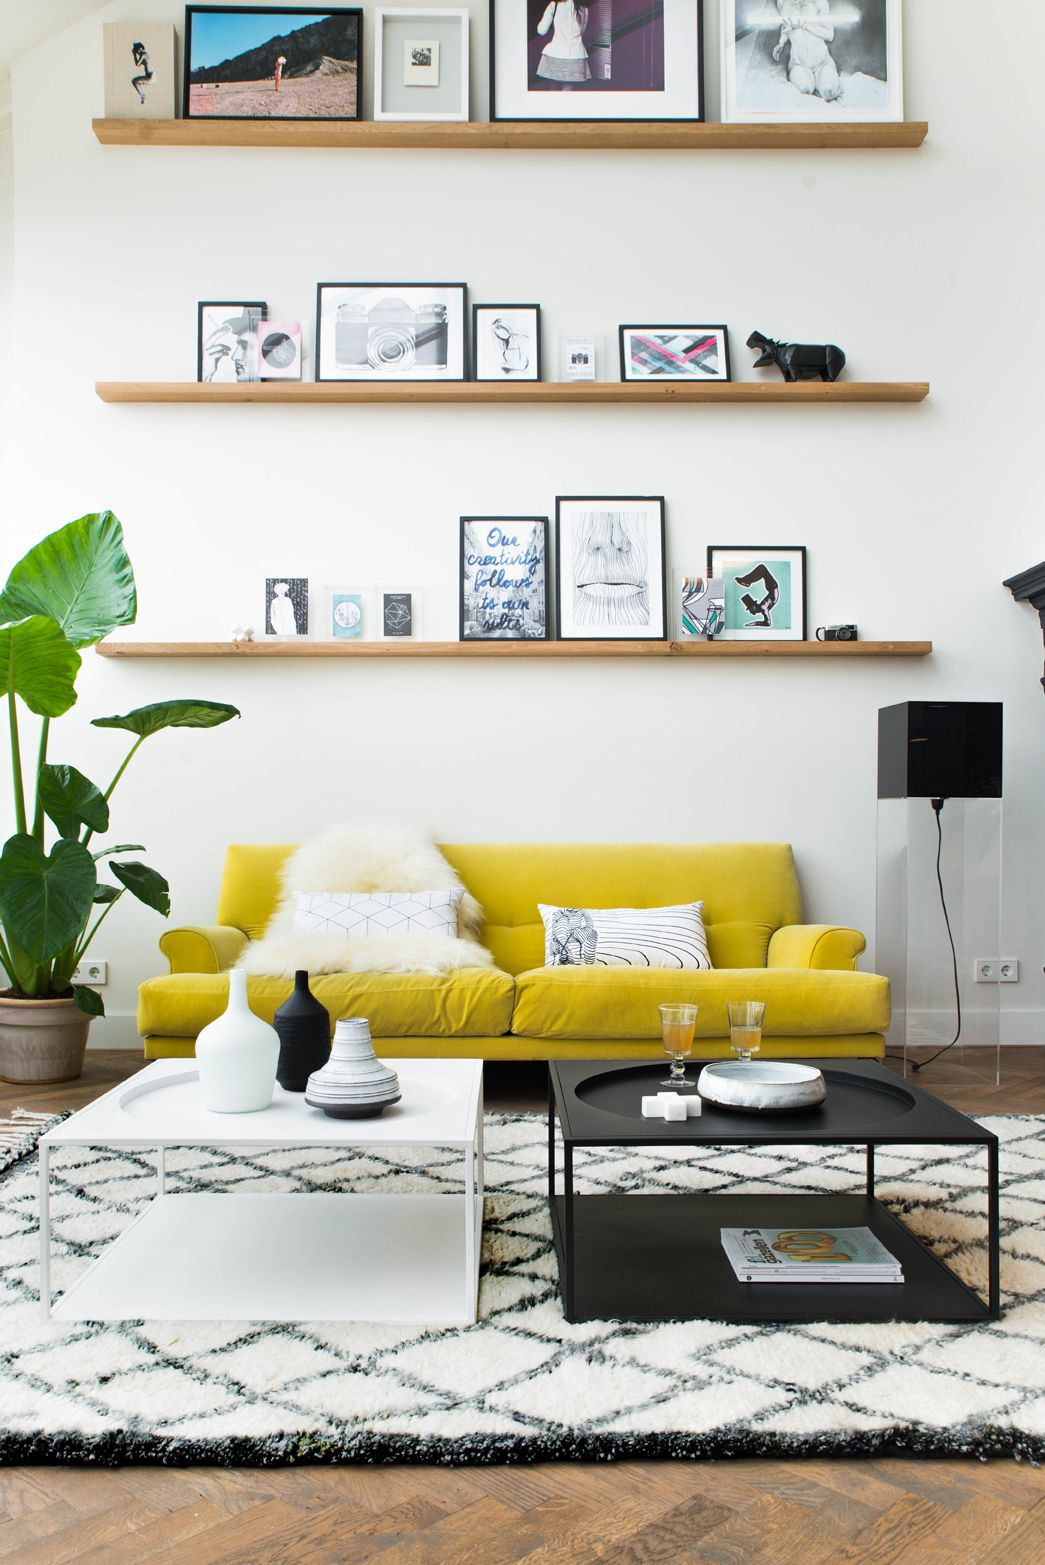 Hkliving Catalogue Summer Edition 2015 Yellow Couch Berber Rug Barefootstyling Com Apartment Living Room Living Room Decor Apartment Yellow Decor Living Room #yellow #sofa #living #room